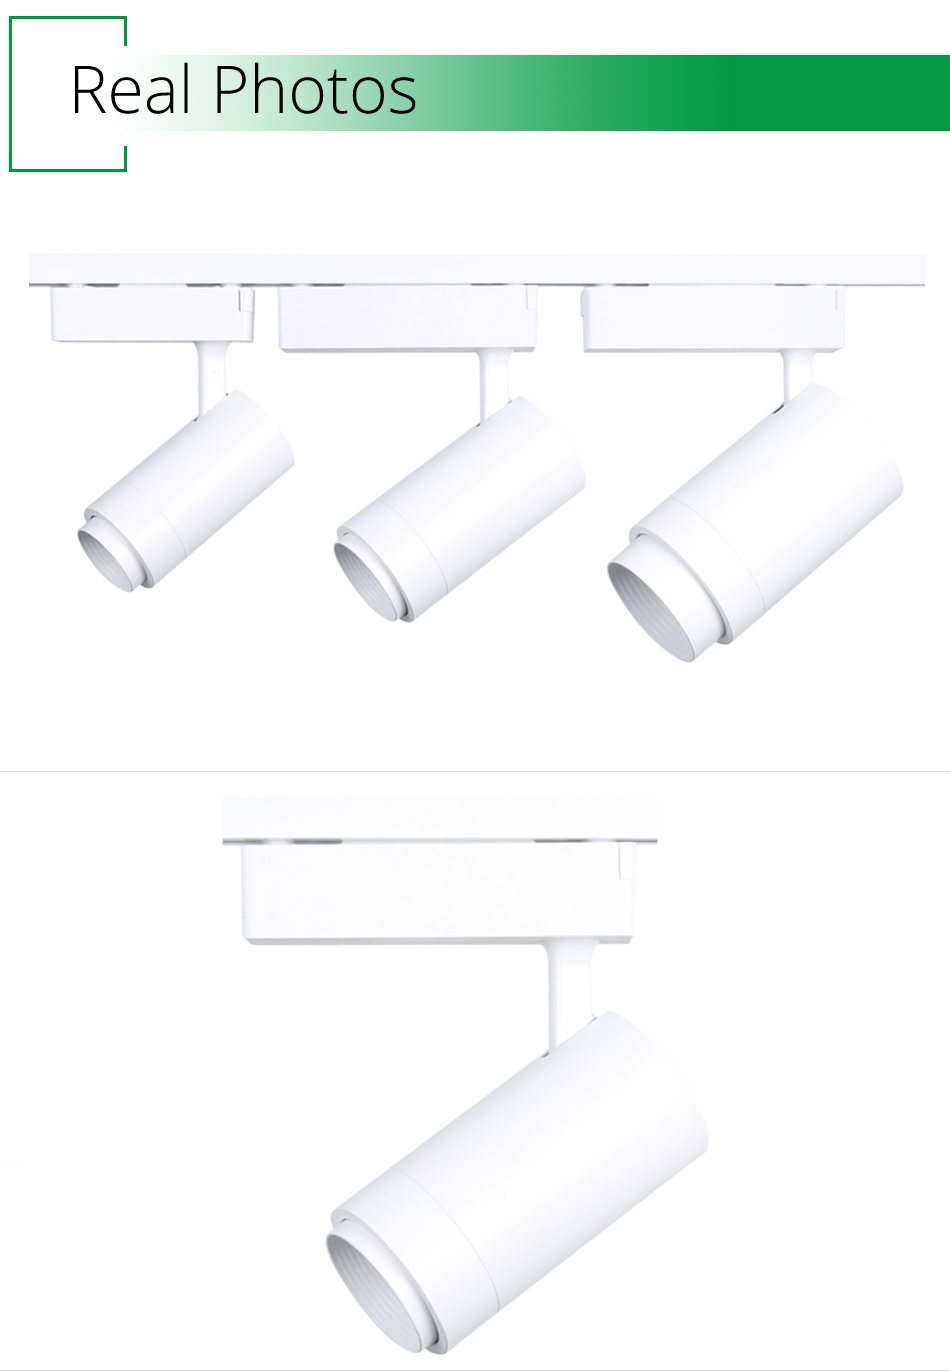 12W 20W 30W LED Track Lights 2 Wire 1Phase 3 Wire 1Phase 4 Wire 3Phase Rail For Lighting Fixtures Spotlights Track Ceiling Lamp (6)